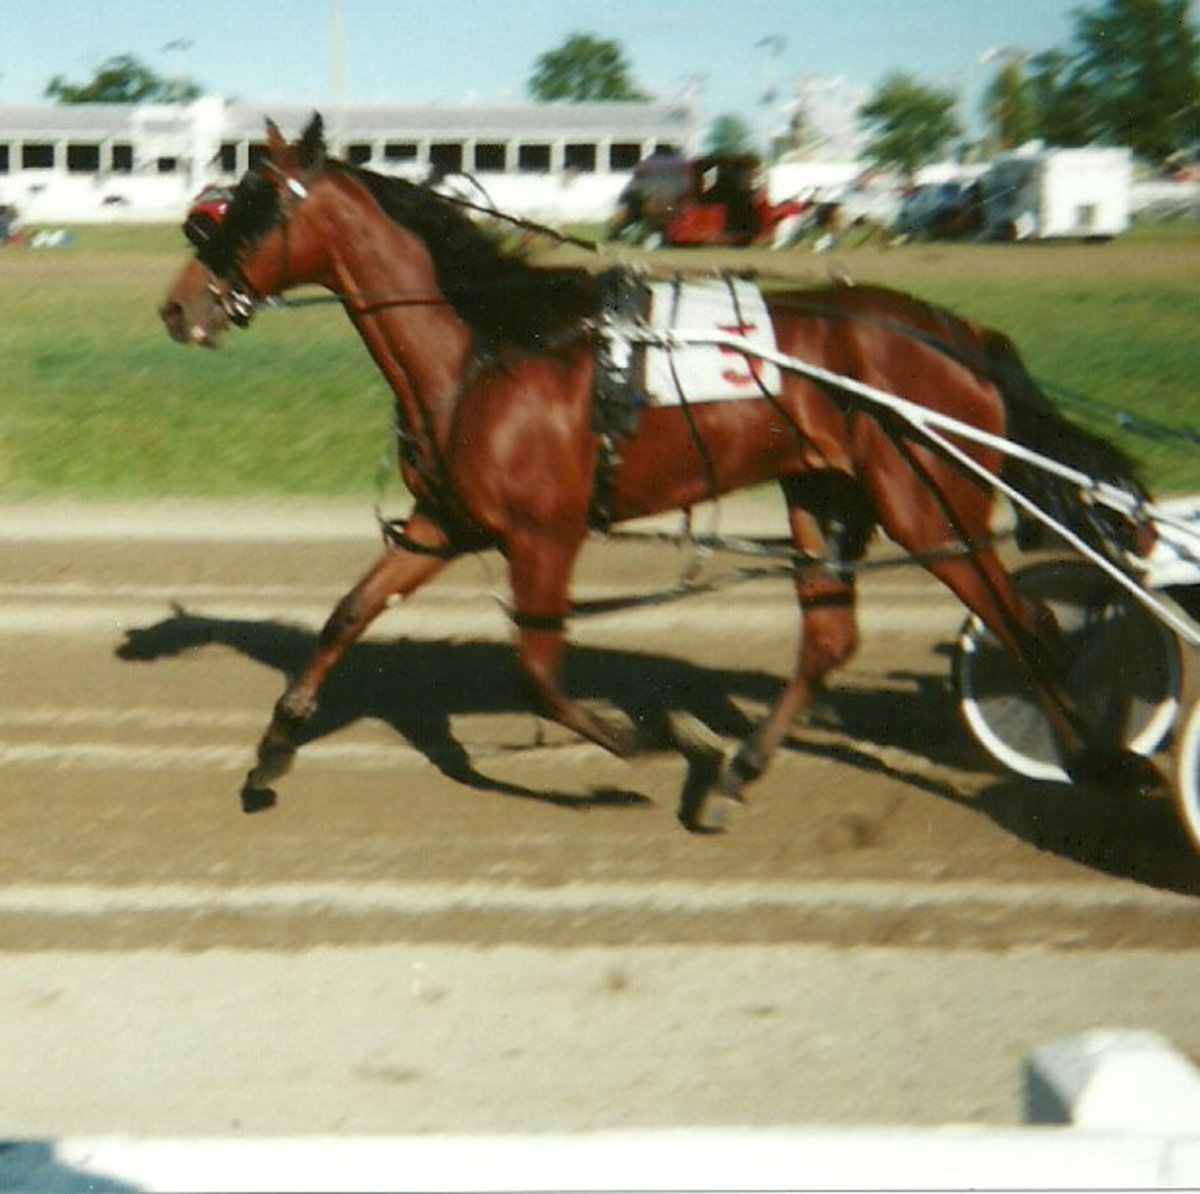 Equipment of the Standardbred Harness Racing Horse